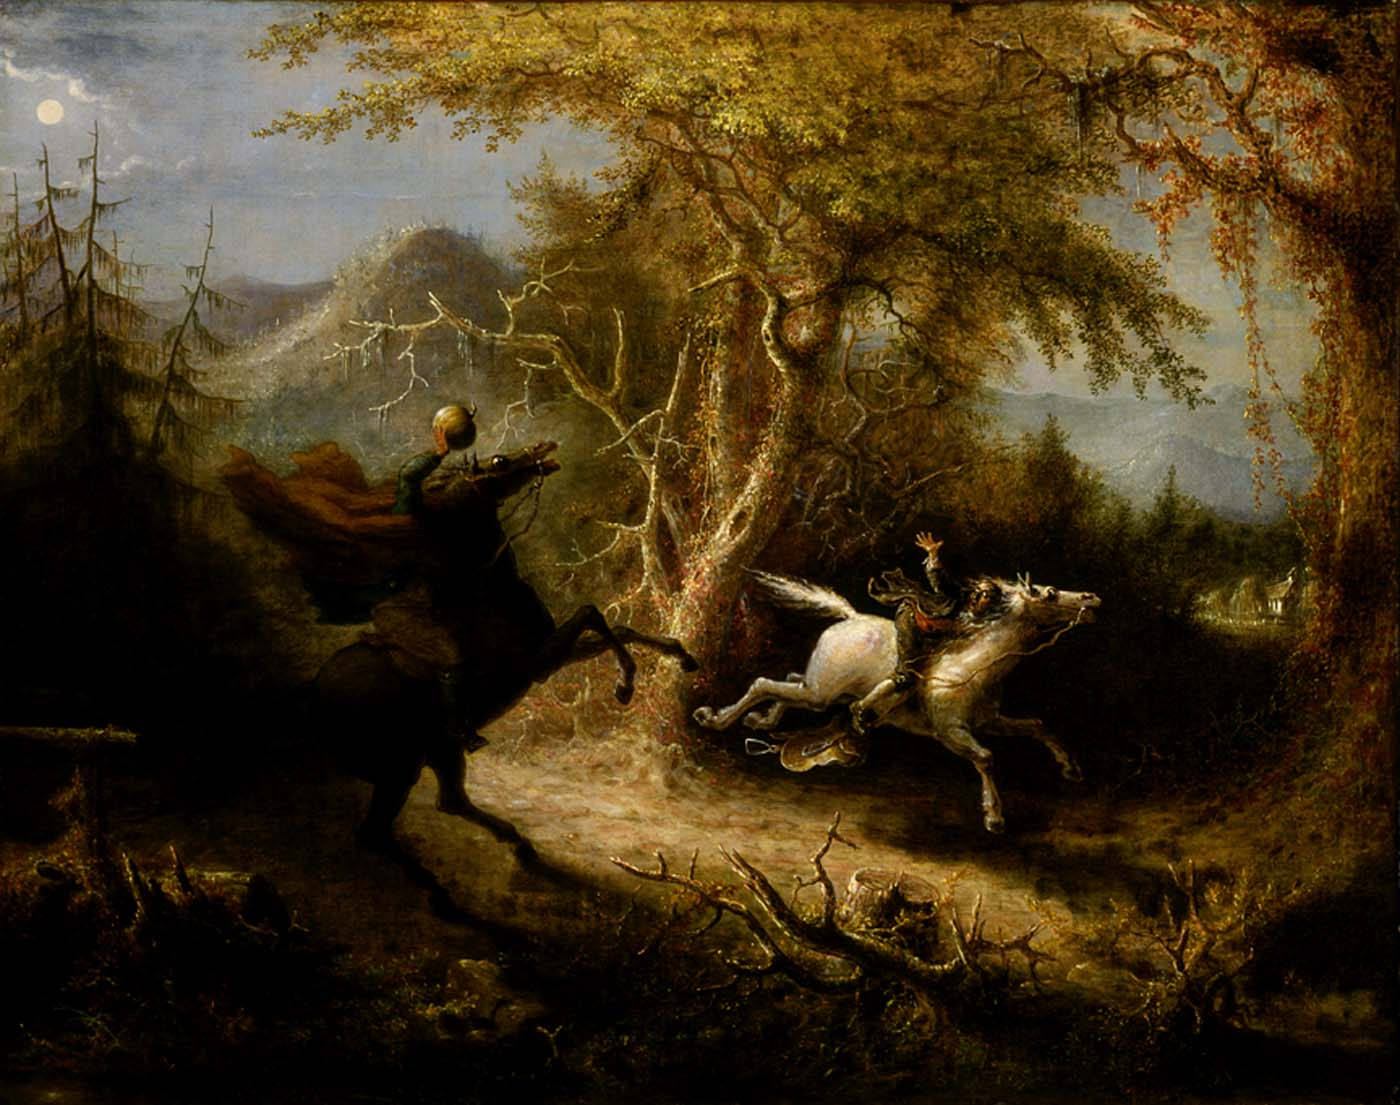 The Headless Horseman Pursuing Ichabod Crane by John Quidor, 1858. Ichabod Crane rides through woodson a white horse, his arm thrown up in alarm. A headless rider with a long cape rides after him on a dark horse.